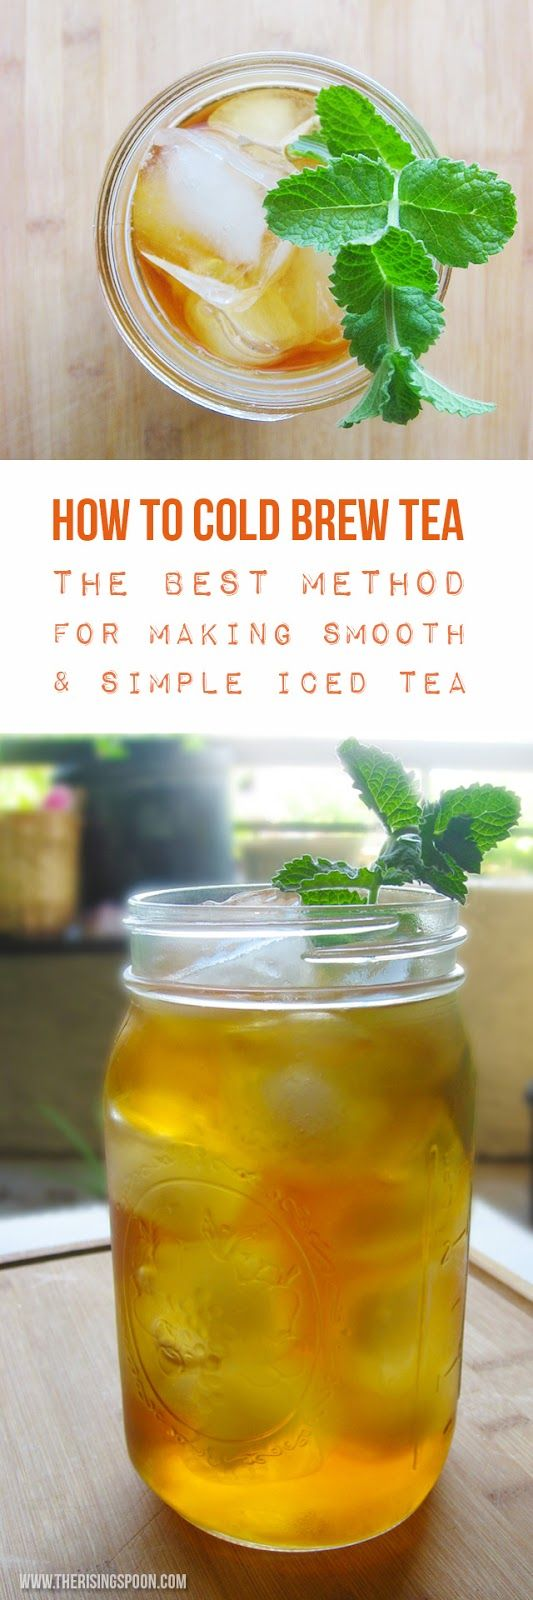 How to Cold Brew Tea: The Best Method for Making Iced Tea. The simplest and possibly tastiest way to make iced tea all year long. Because the cold water is gentler on the leaves, there is less chance for bitterness. Nobody likes bitter tea, right?